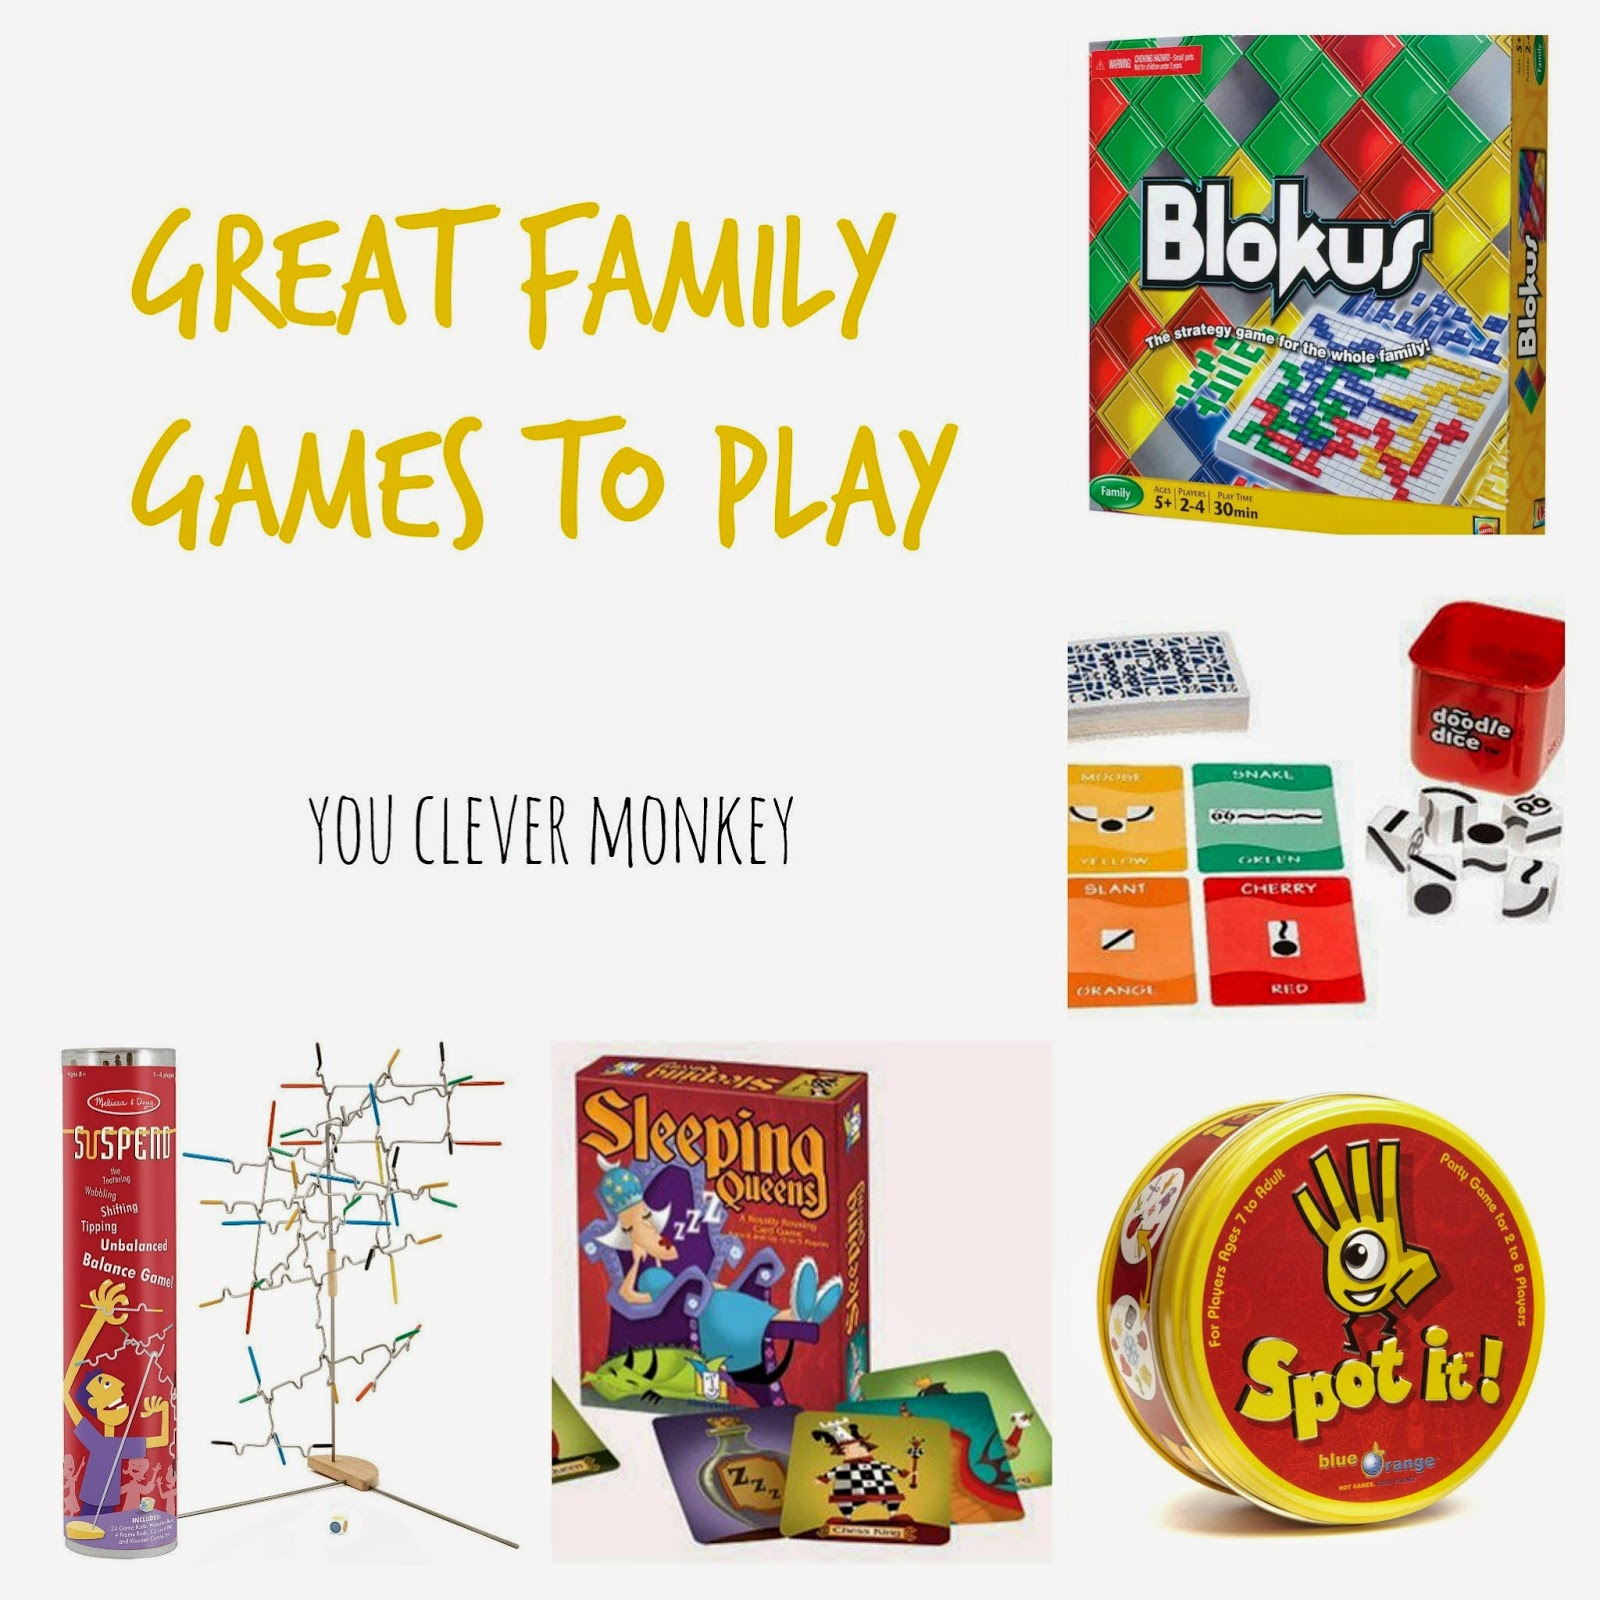 Great family board games to play together!